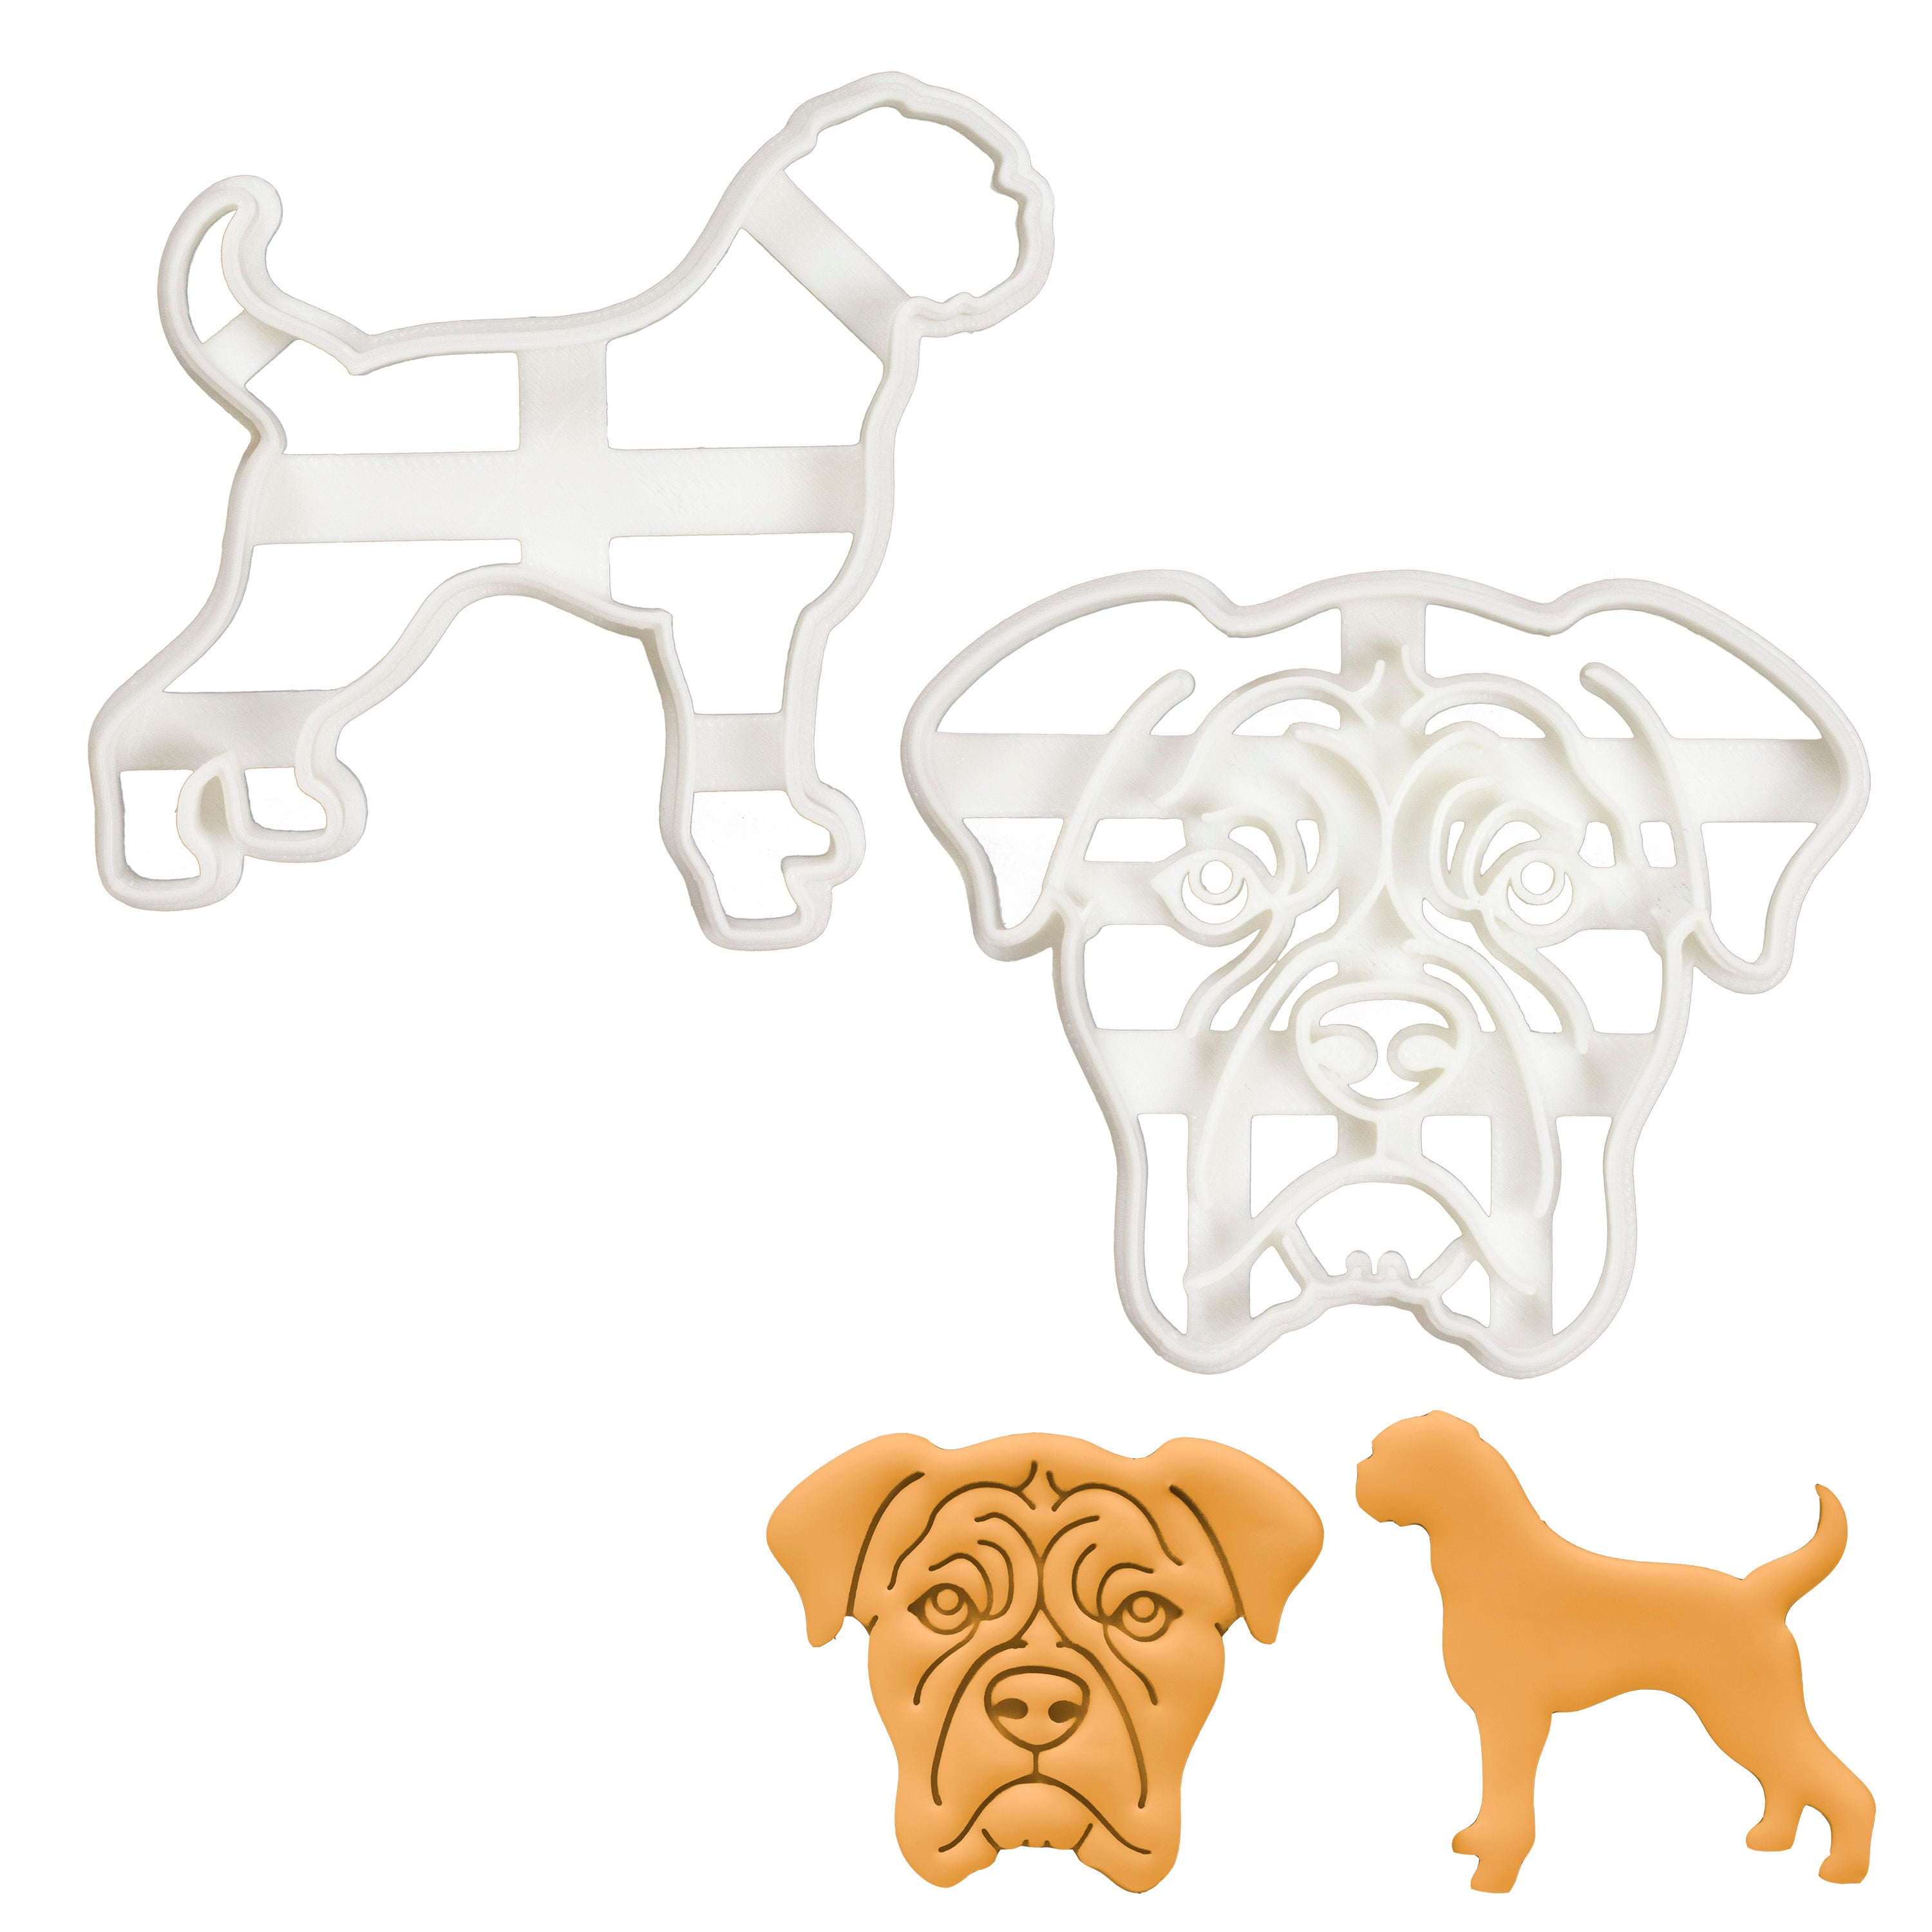 Set of 2 Boxer cookie cutters (Designs: Face and Silhouette)